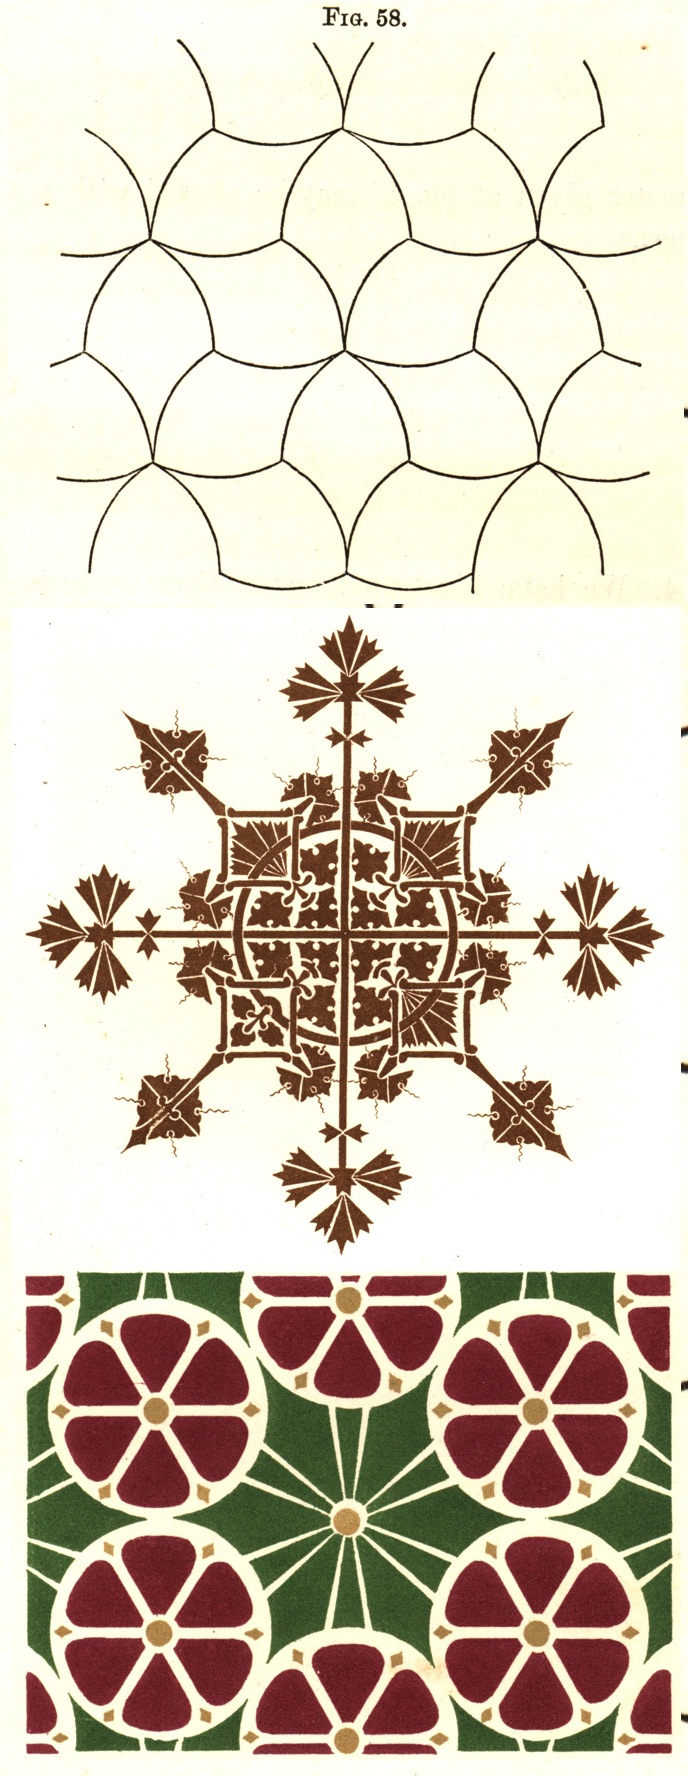 Figure 8. Dresser, ornamental patterns with radial symmetry, suitable for floors or ceilings. Fig. 57, Plate XVIII fig. 2, and Plate V fig. 3 from _The Art of Decorative Design_. Courtesyof the Department of Special Collections, Stanford University Libraries.